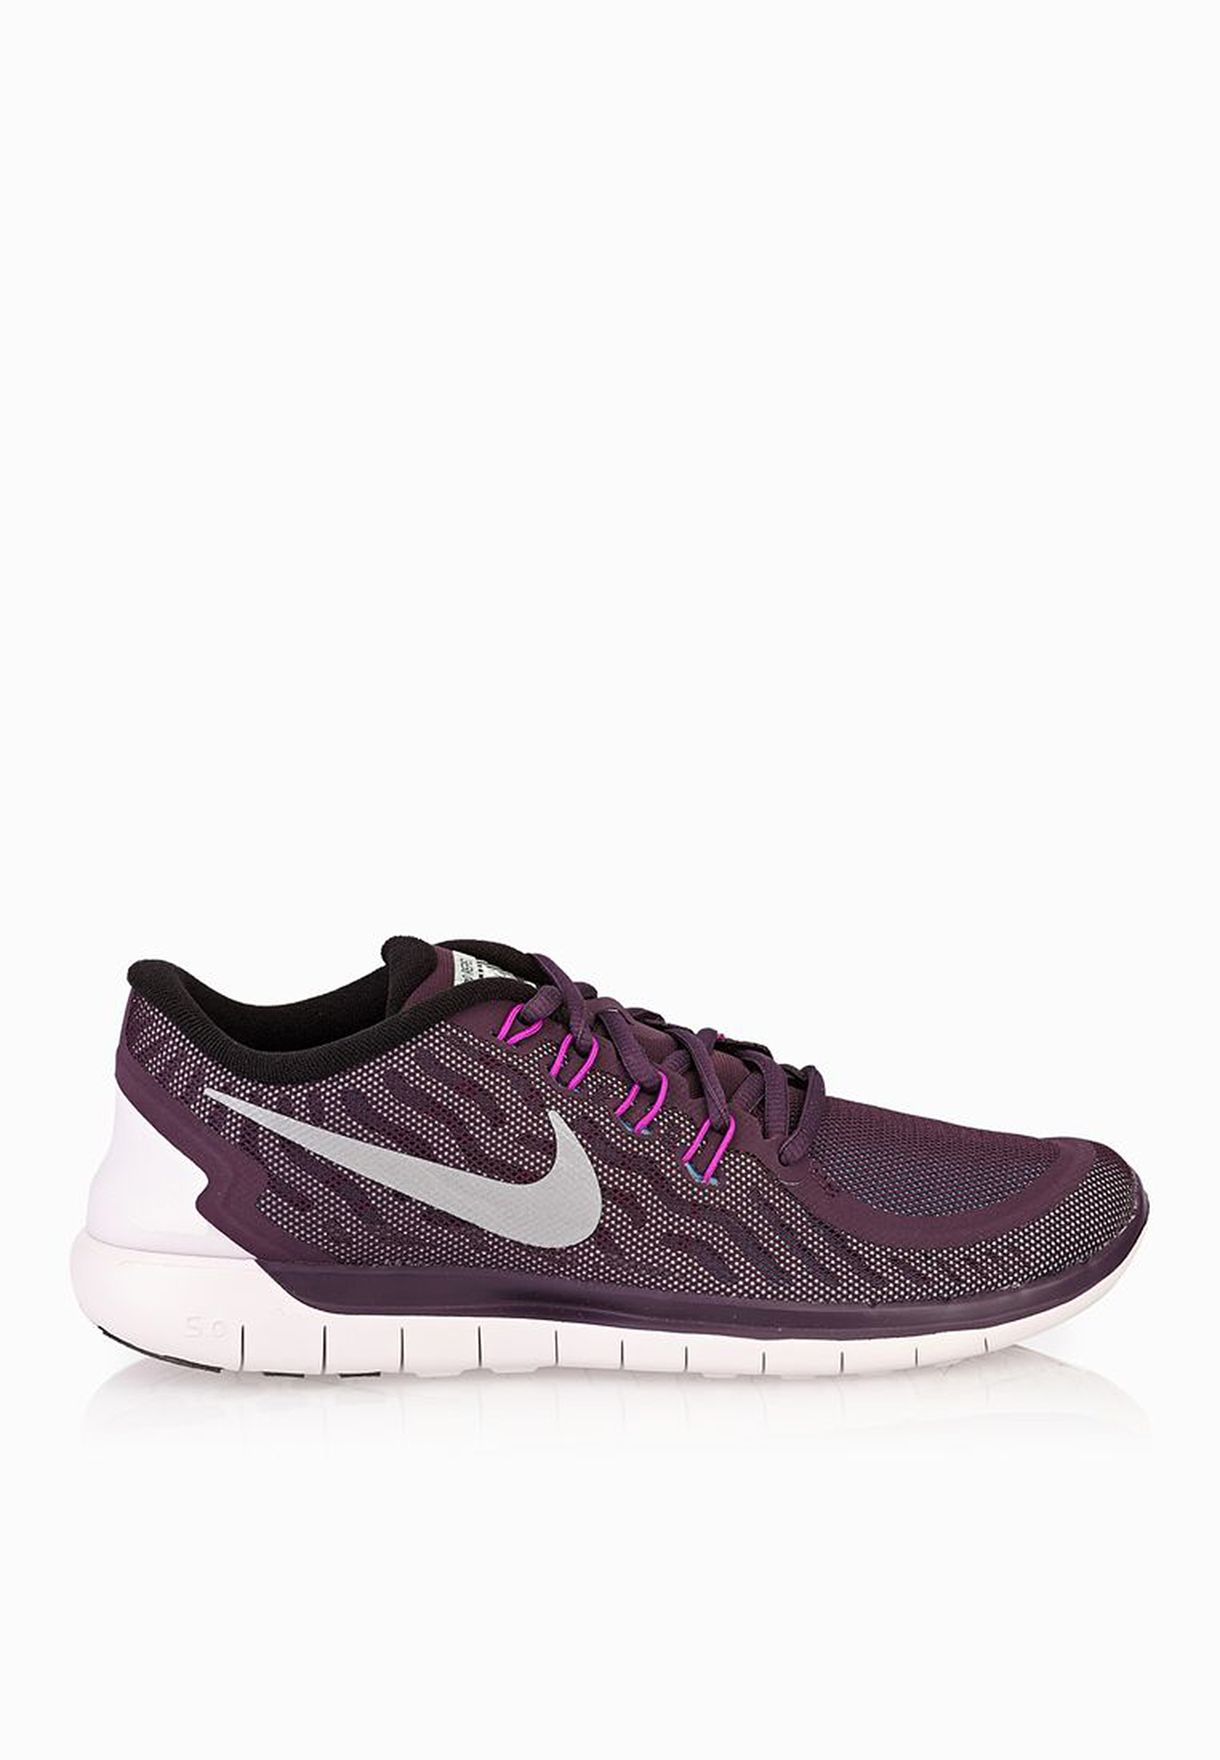 Details about Nike Free 5.0 Flash wmns trainers sneaker 806575 500 uk 4 eu 37.5 us 6.5 NEW+BOX